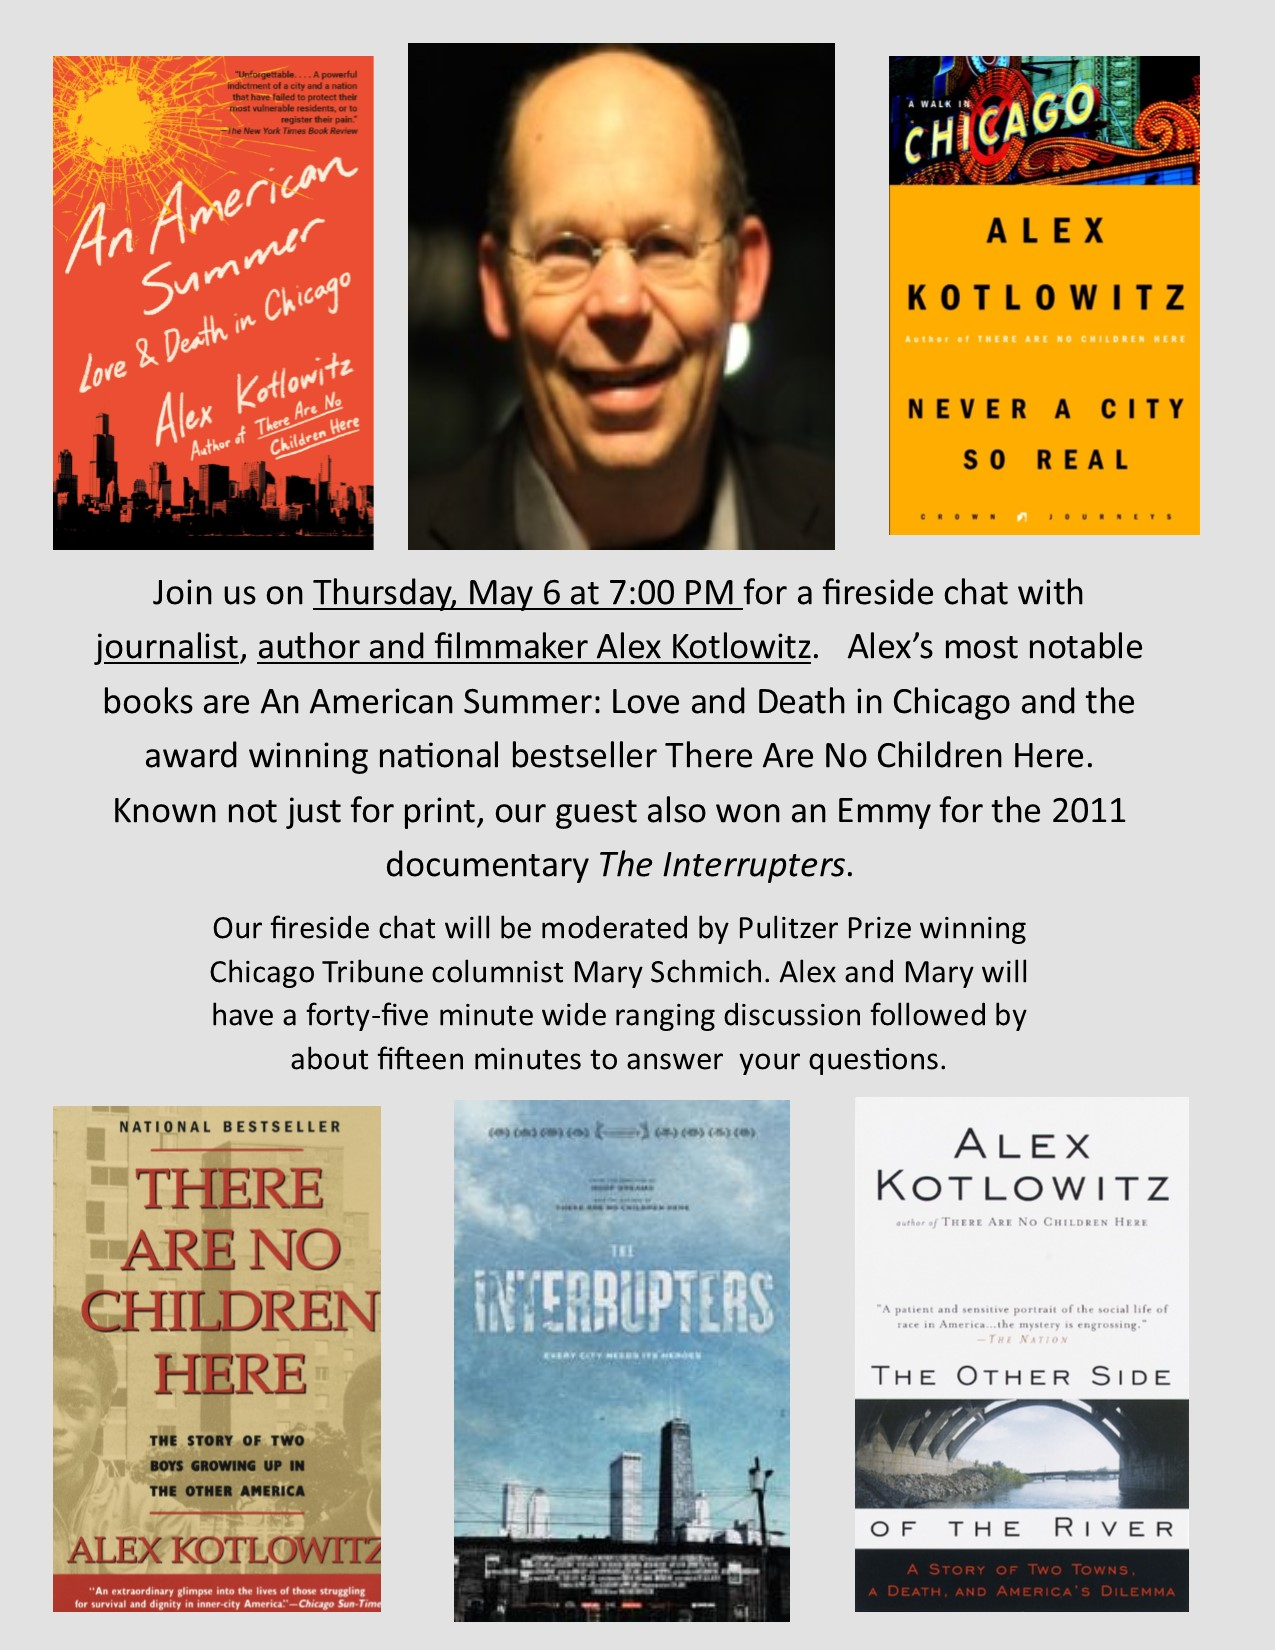 Poster featuring images of Alex Kotlowitz, journalist and author, and a selection of his book covers